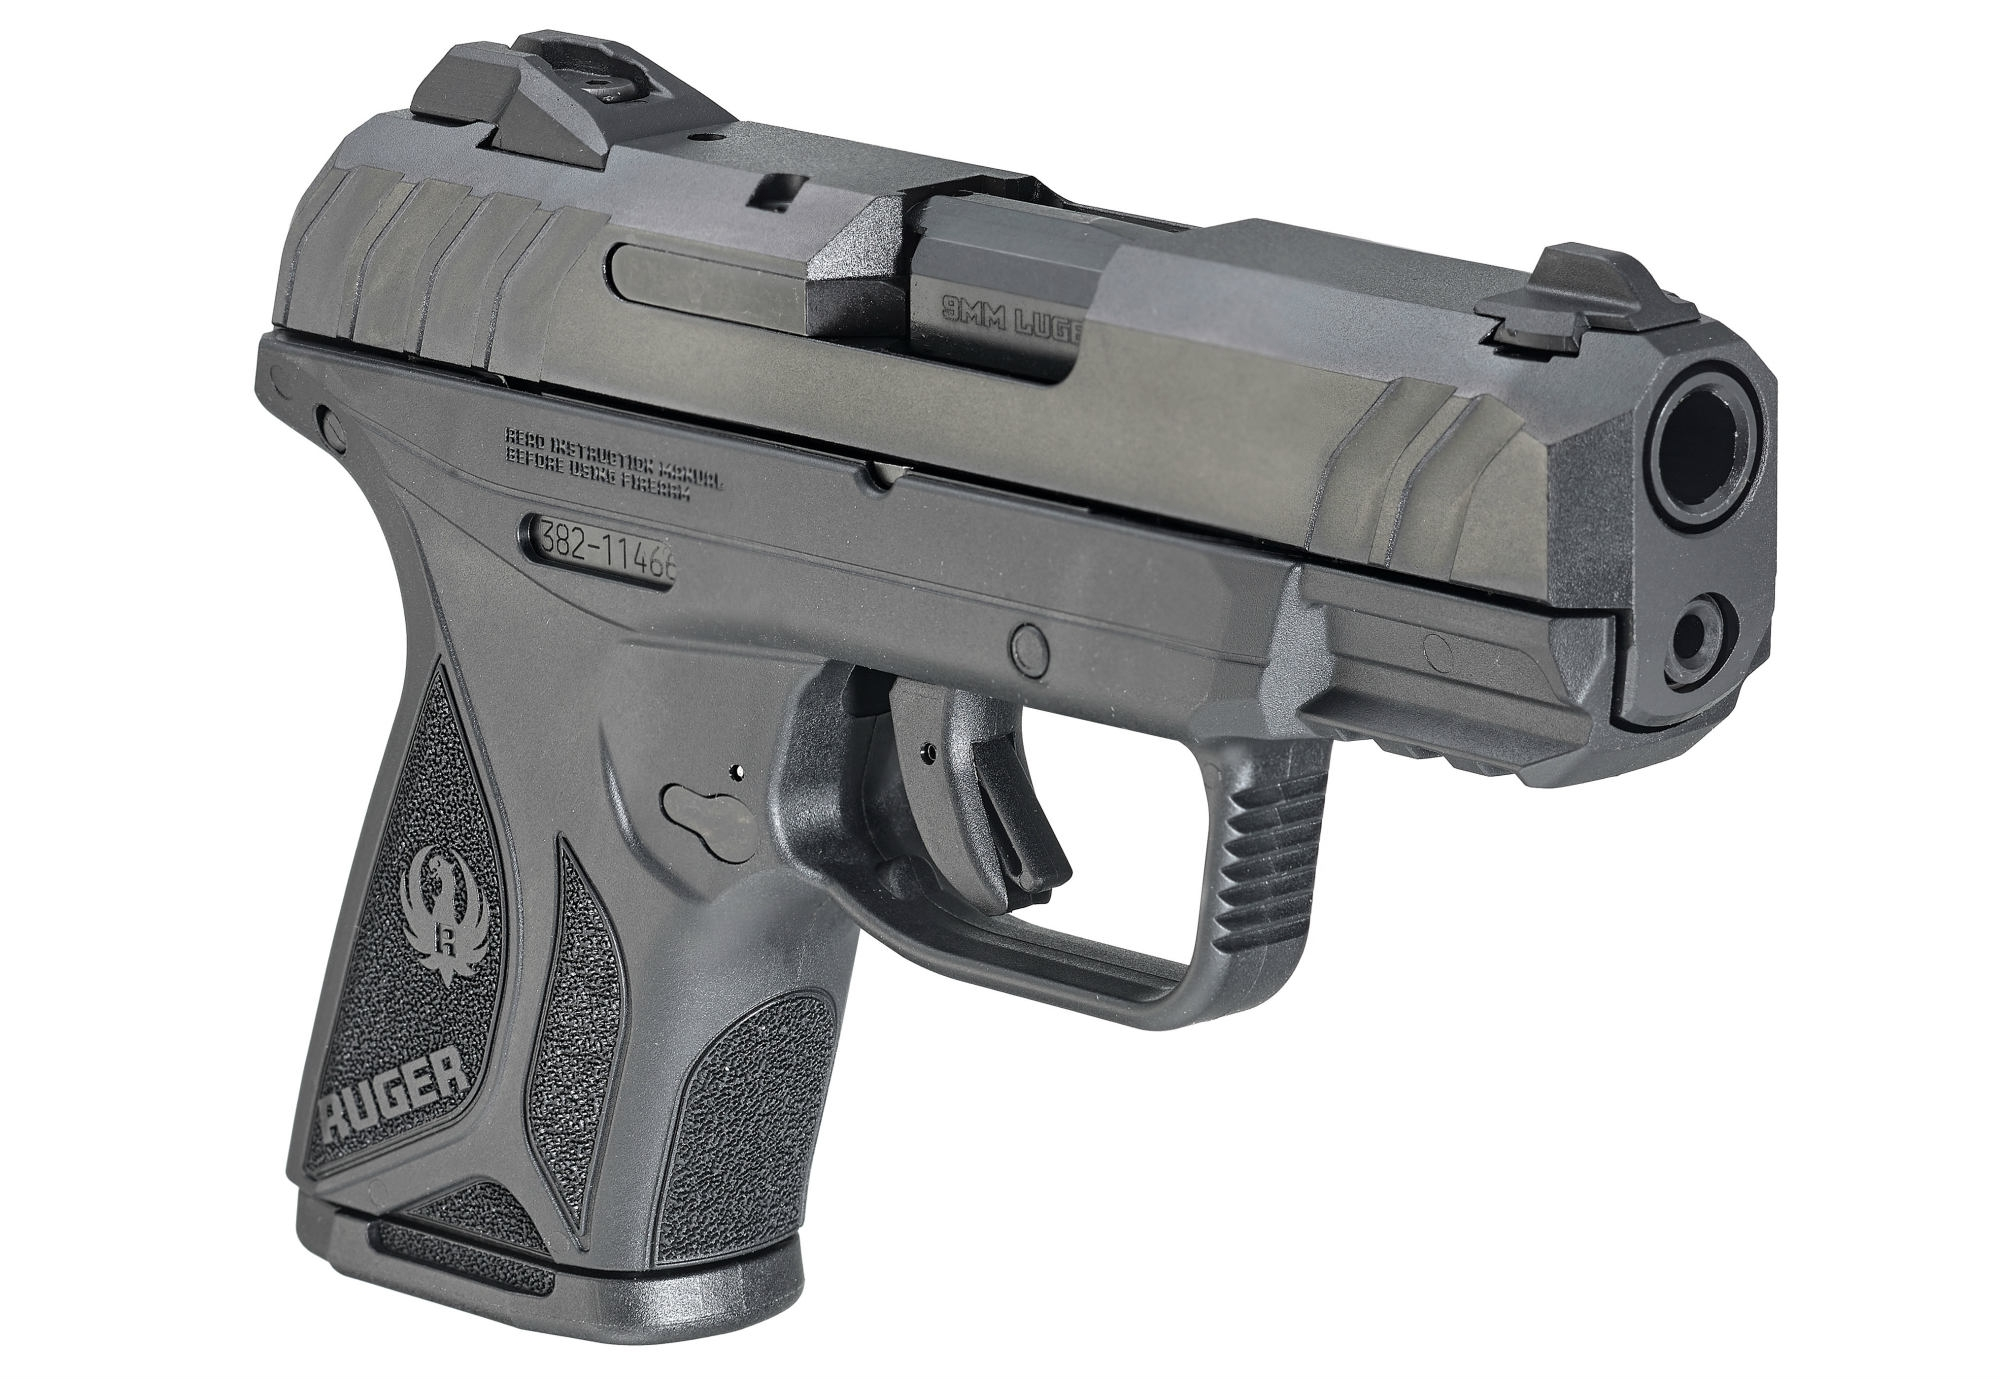 The steel slide of the Ruger Security-9 pistol